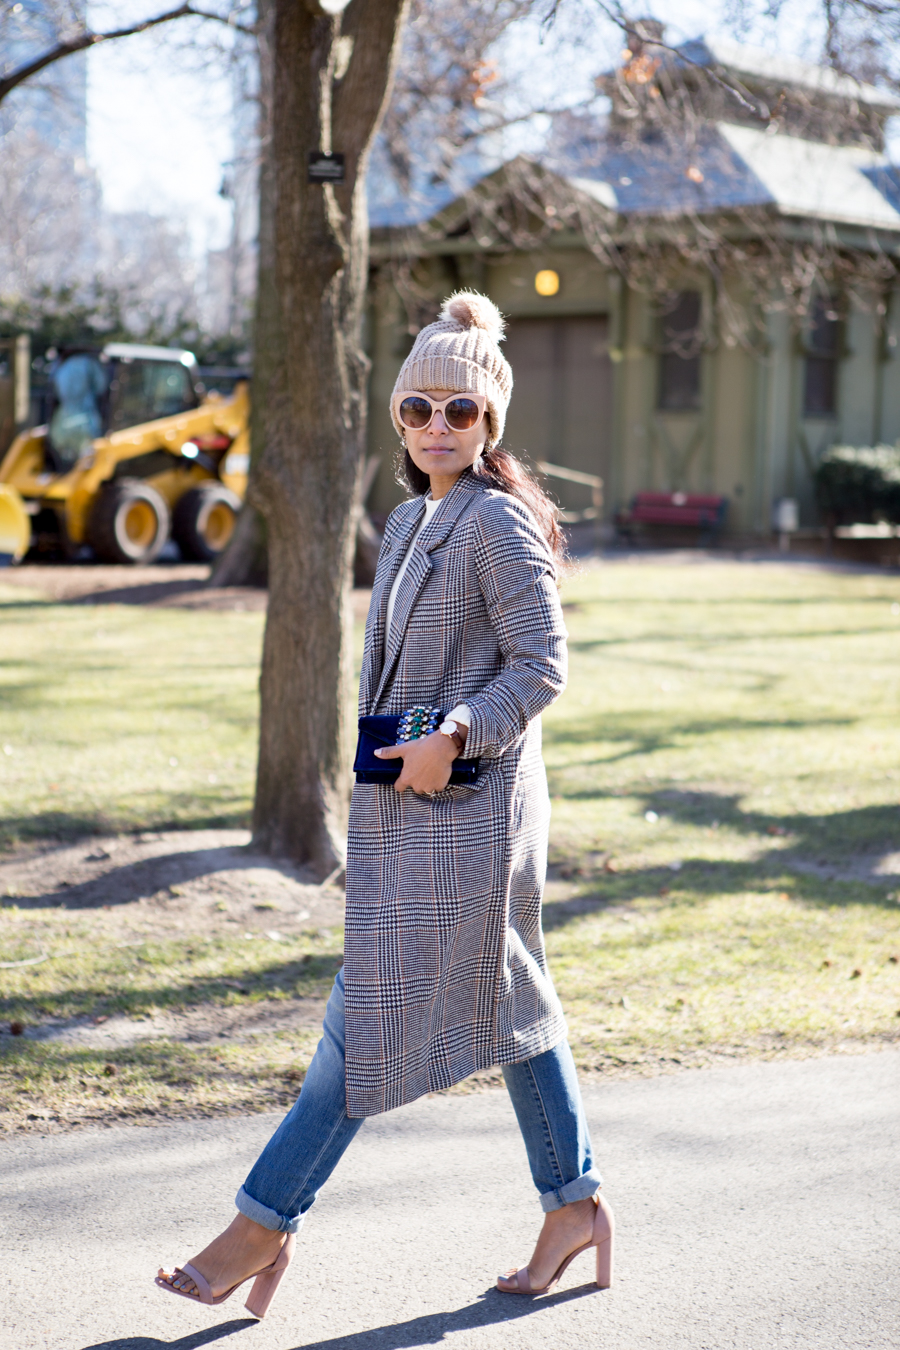 winter style, houndstooth, girlfriend jeans, distressed jeans, winter coat, neutrals, beanie, boston style, petite fashion, pear-shape, petite jeans, elegant, sparkly, party bags